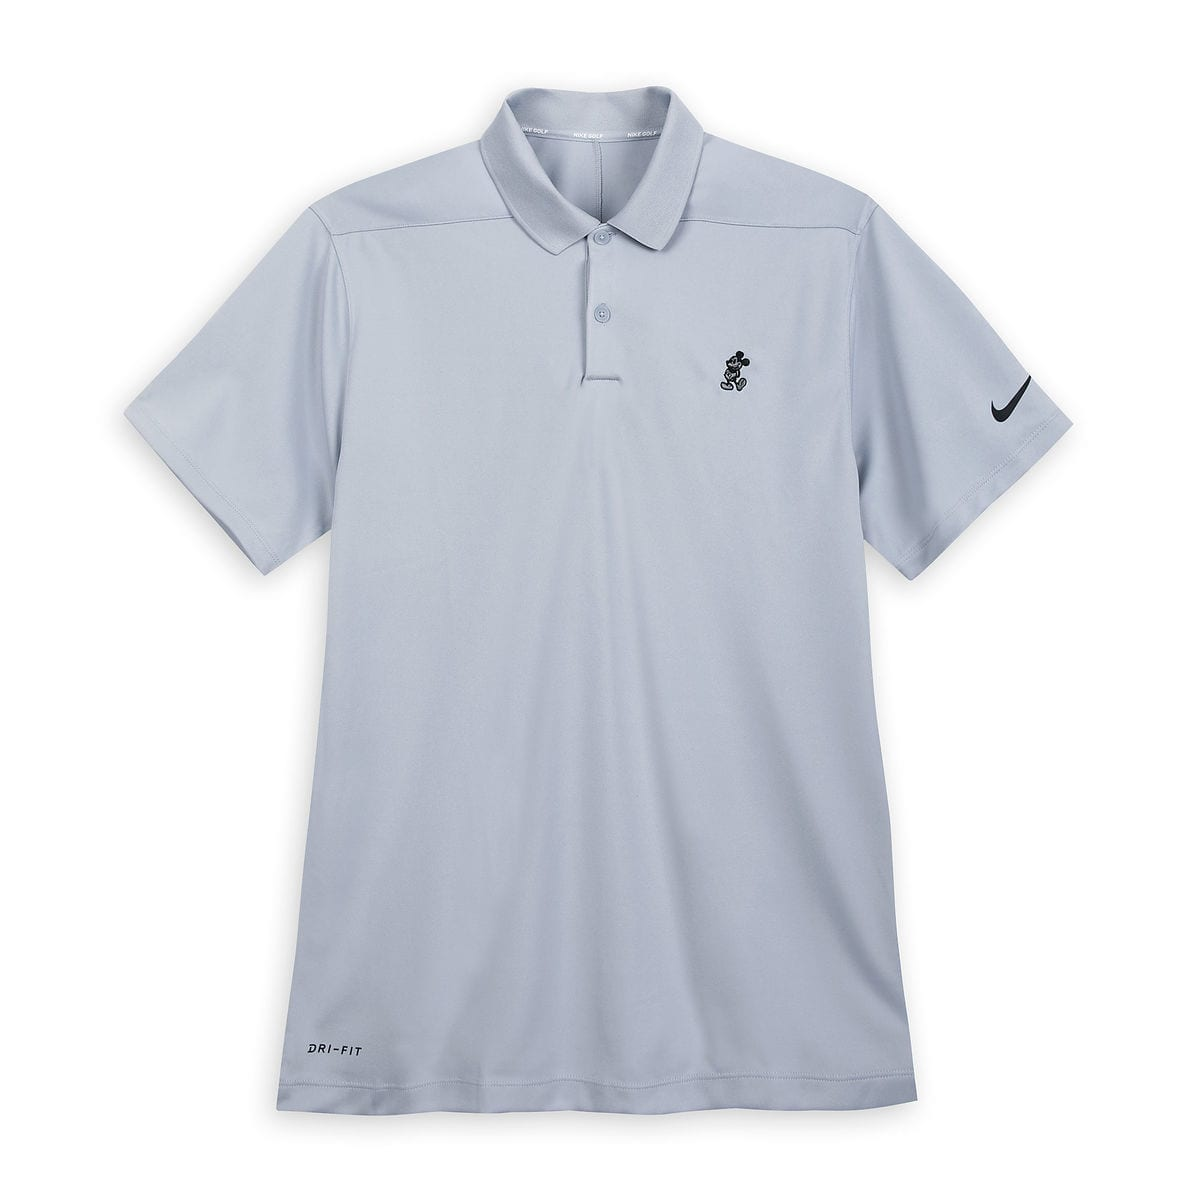 8cfa3f49 Add to My Lists. Disney Nike Polo Shirt for Men - Mickey Mouse - Gray